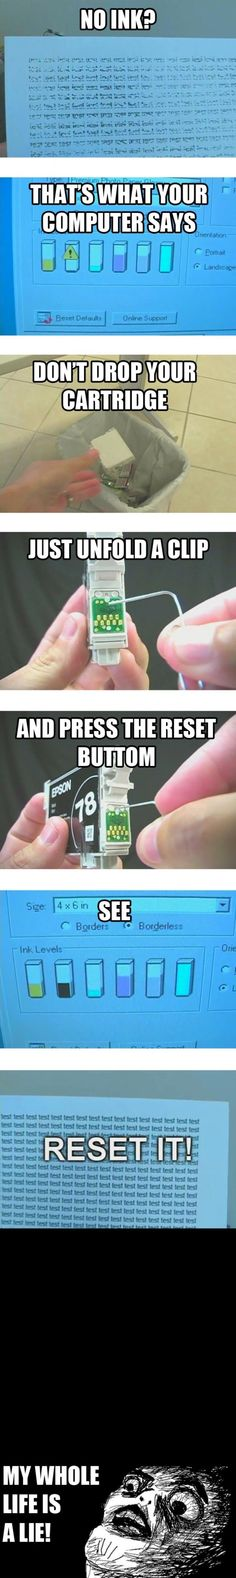 """Low"" Ink Cartridge Reset Button"